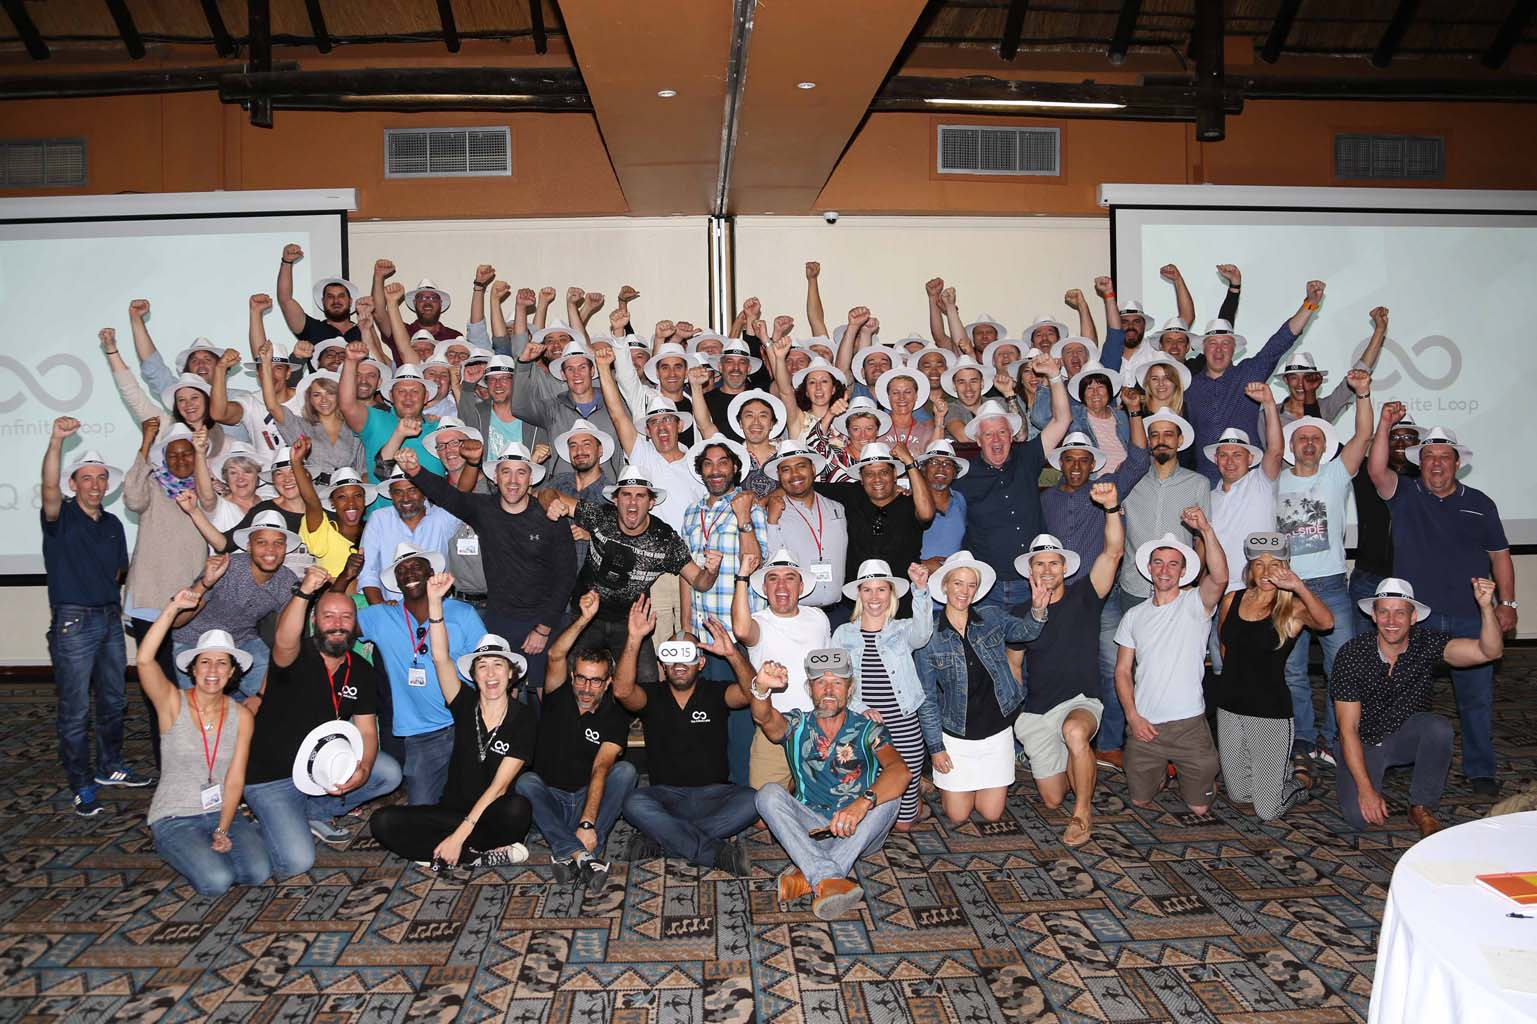 A large group of delegates smiling for a photo during their virtual reality team building challenge with Orangeworks.